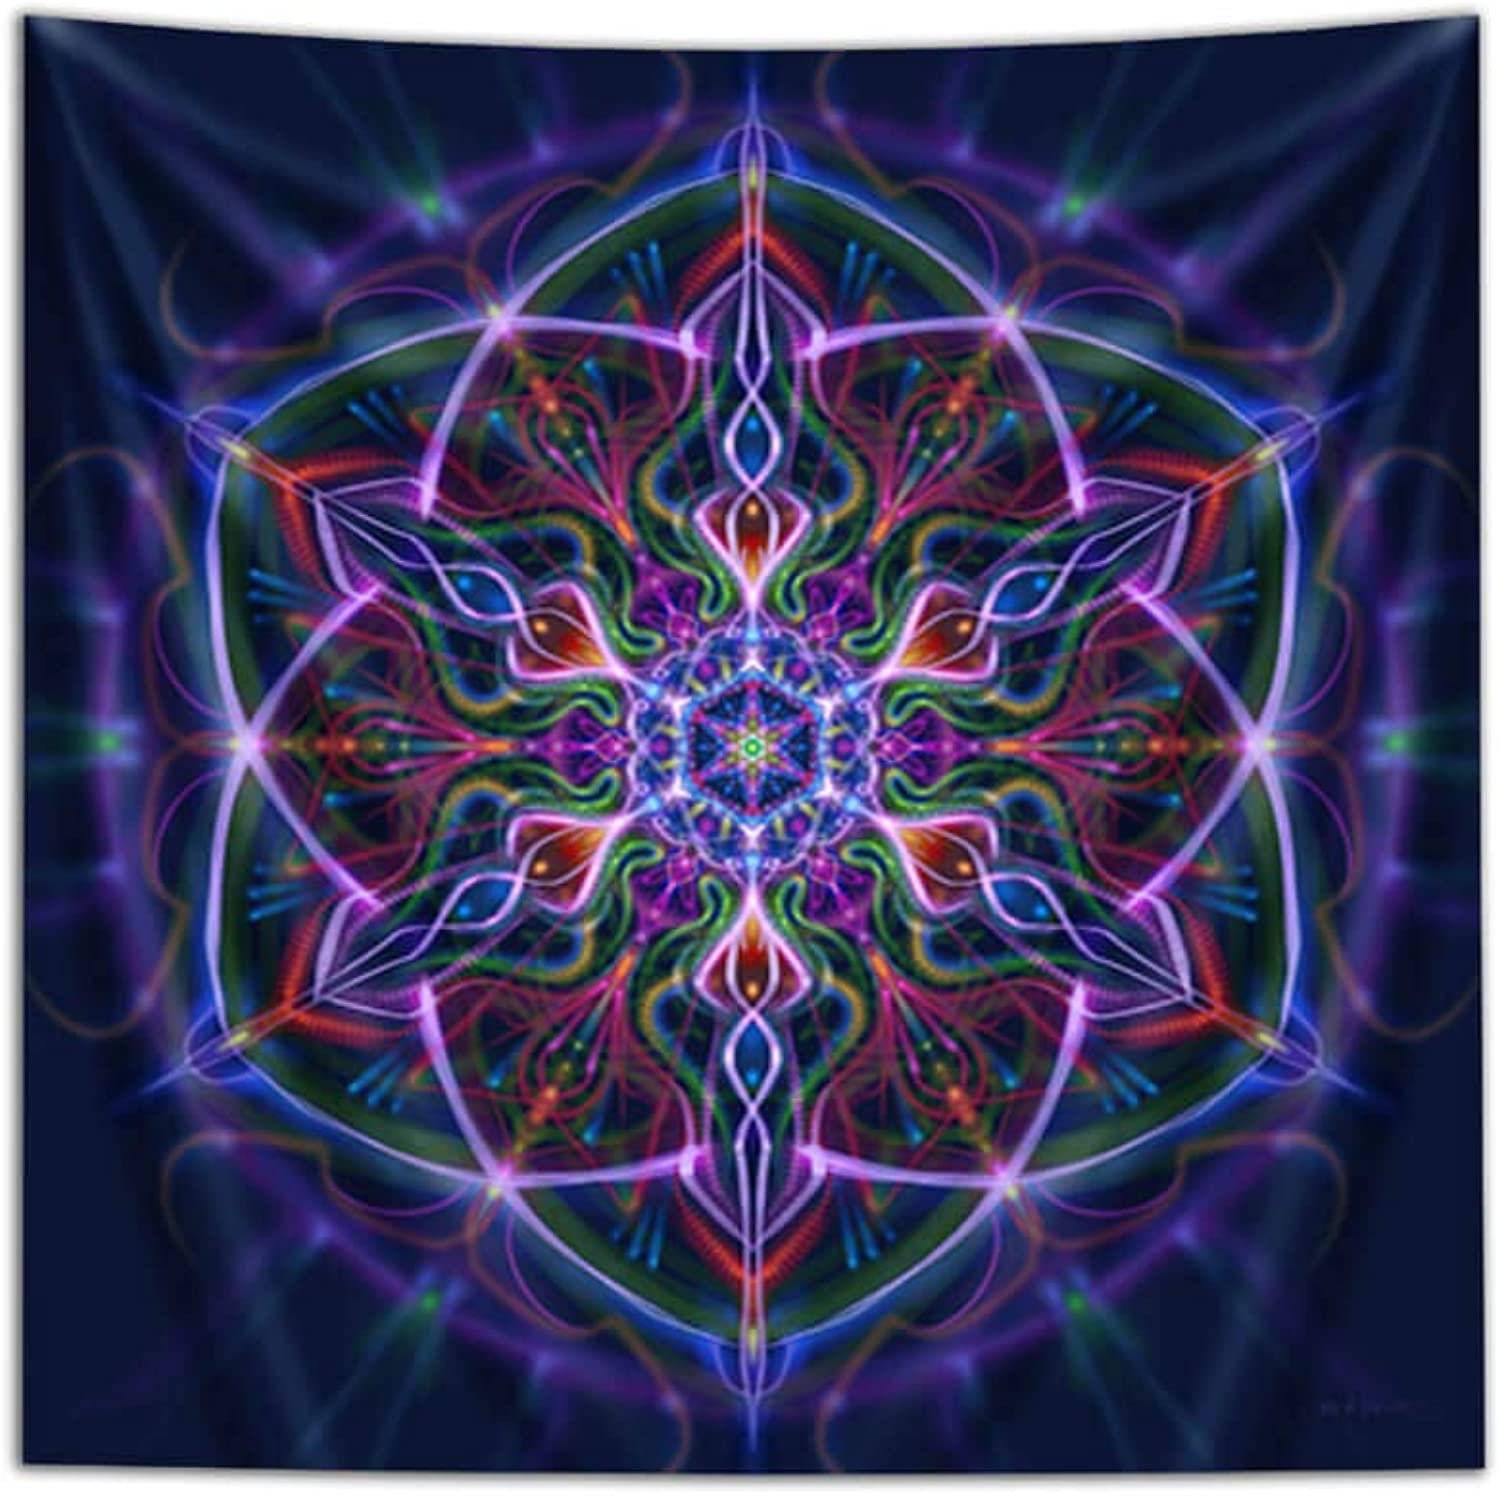 "Third Eye Tapestries ""Caapi Seed"" Wall Tapestry by Simon Haiduk - Psychedelic Art Tapestry - Hanging Modern Art Tapestry (40x60)"